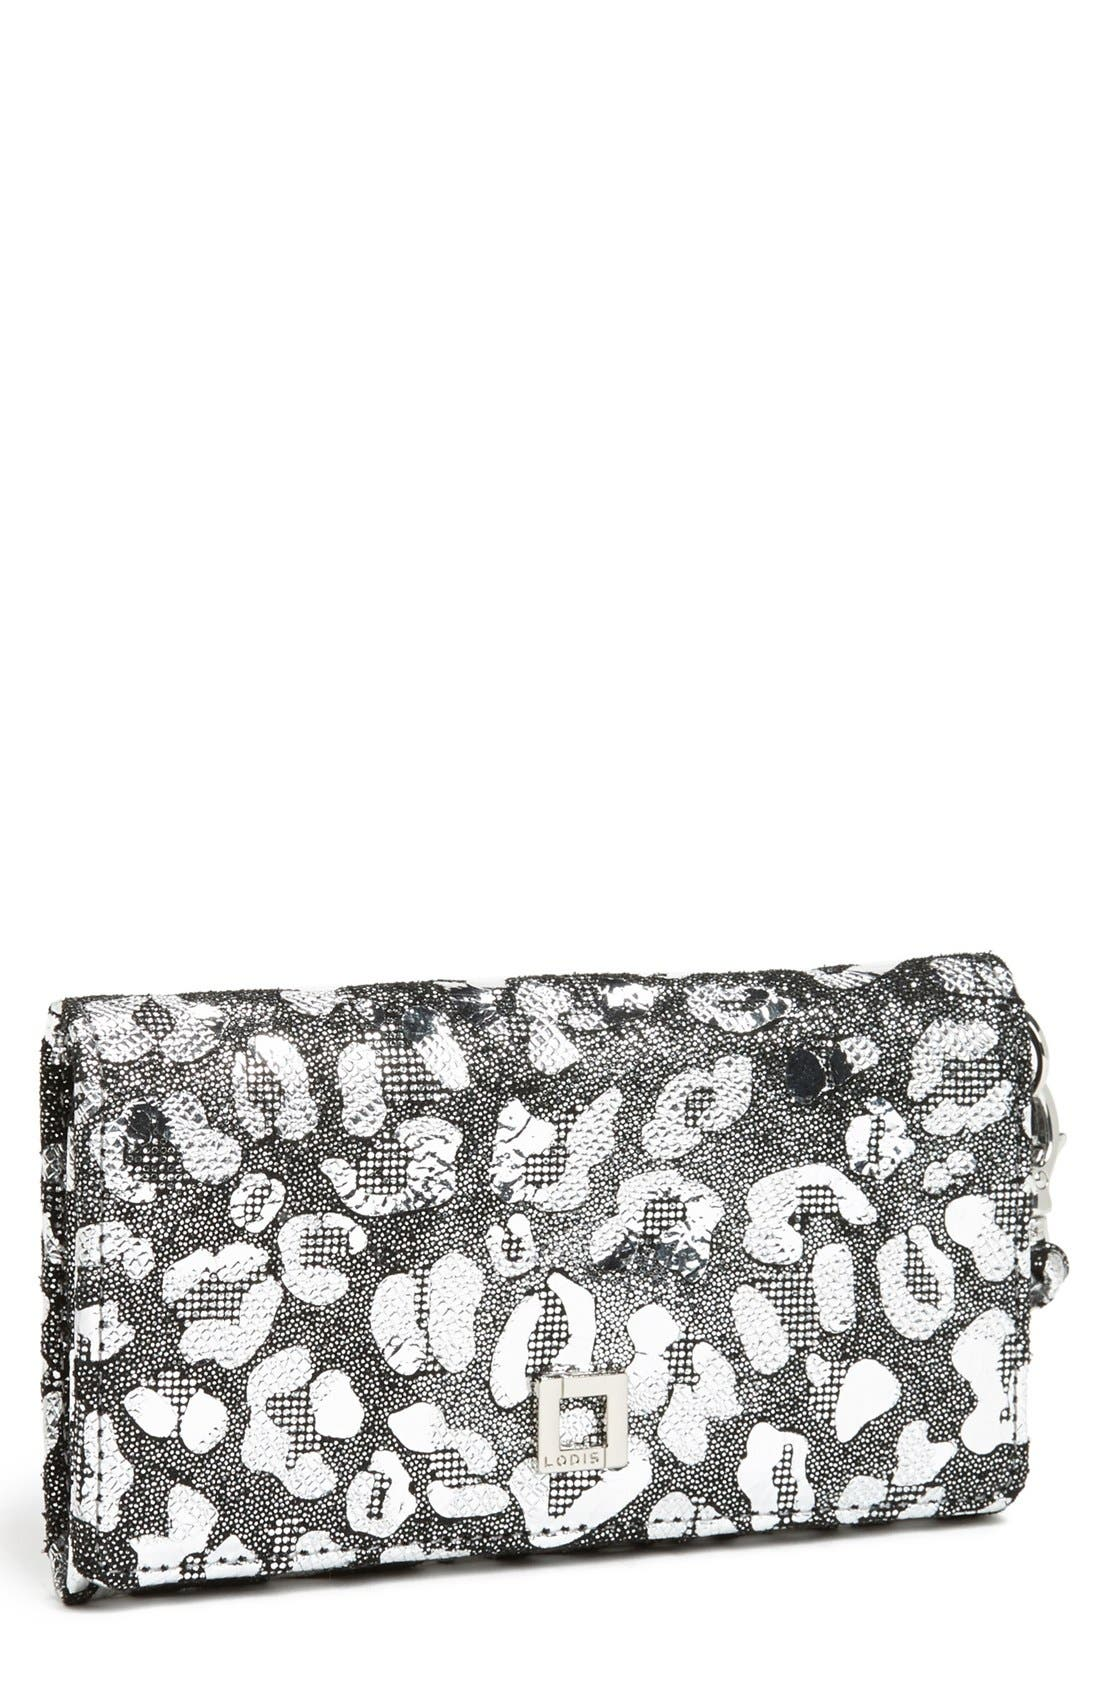 Alternate Image 1 Selected - Lodis 'Cassie' Smartphone Wristlet